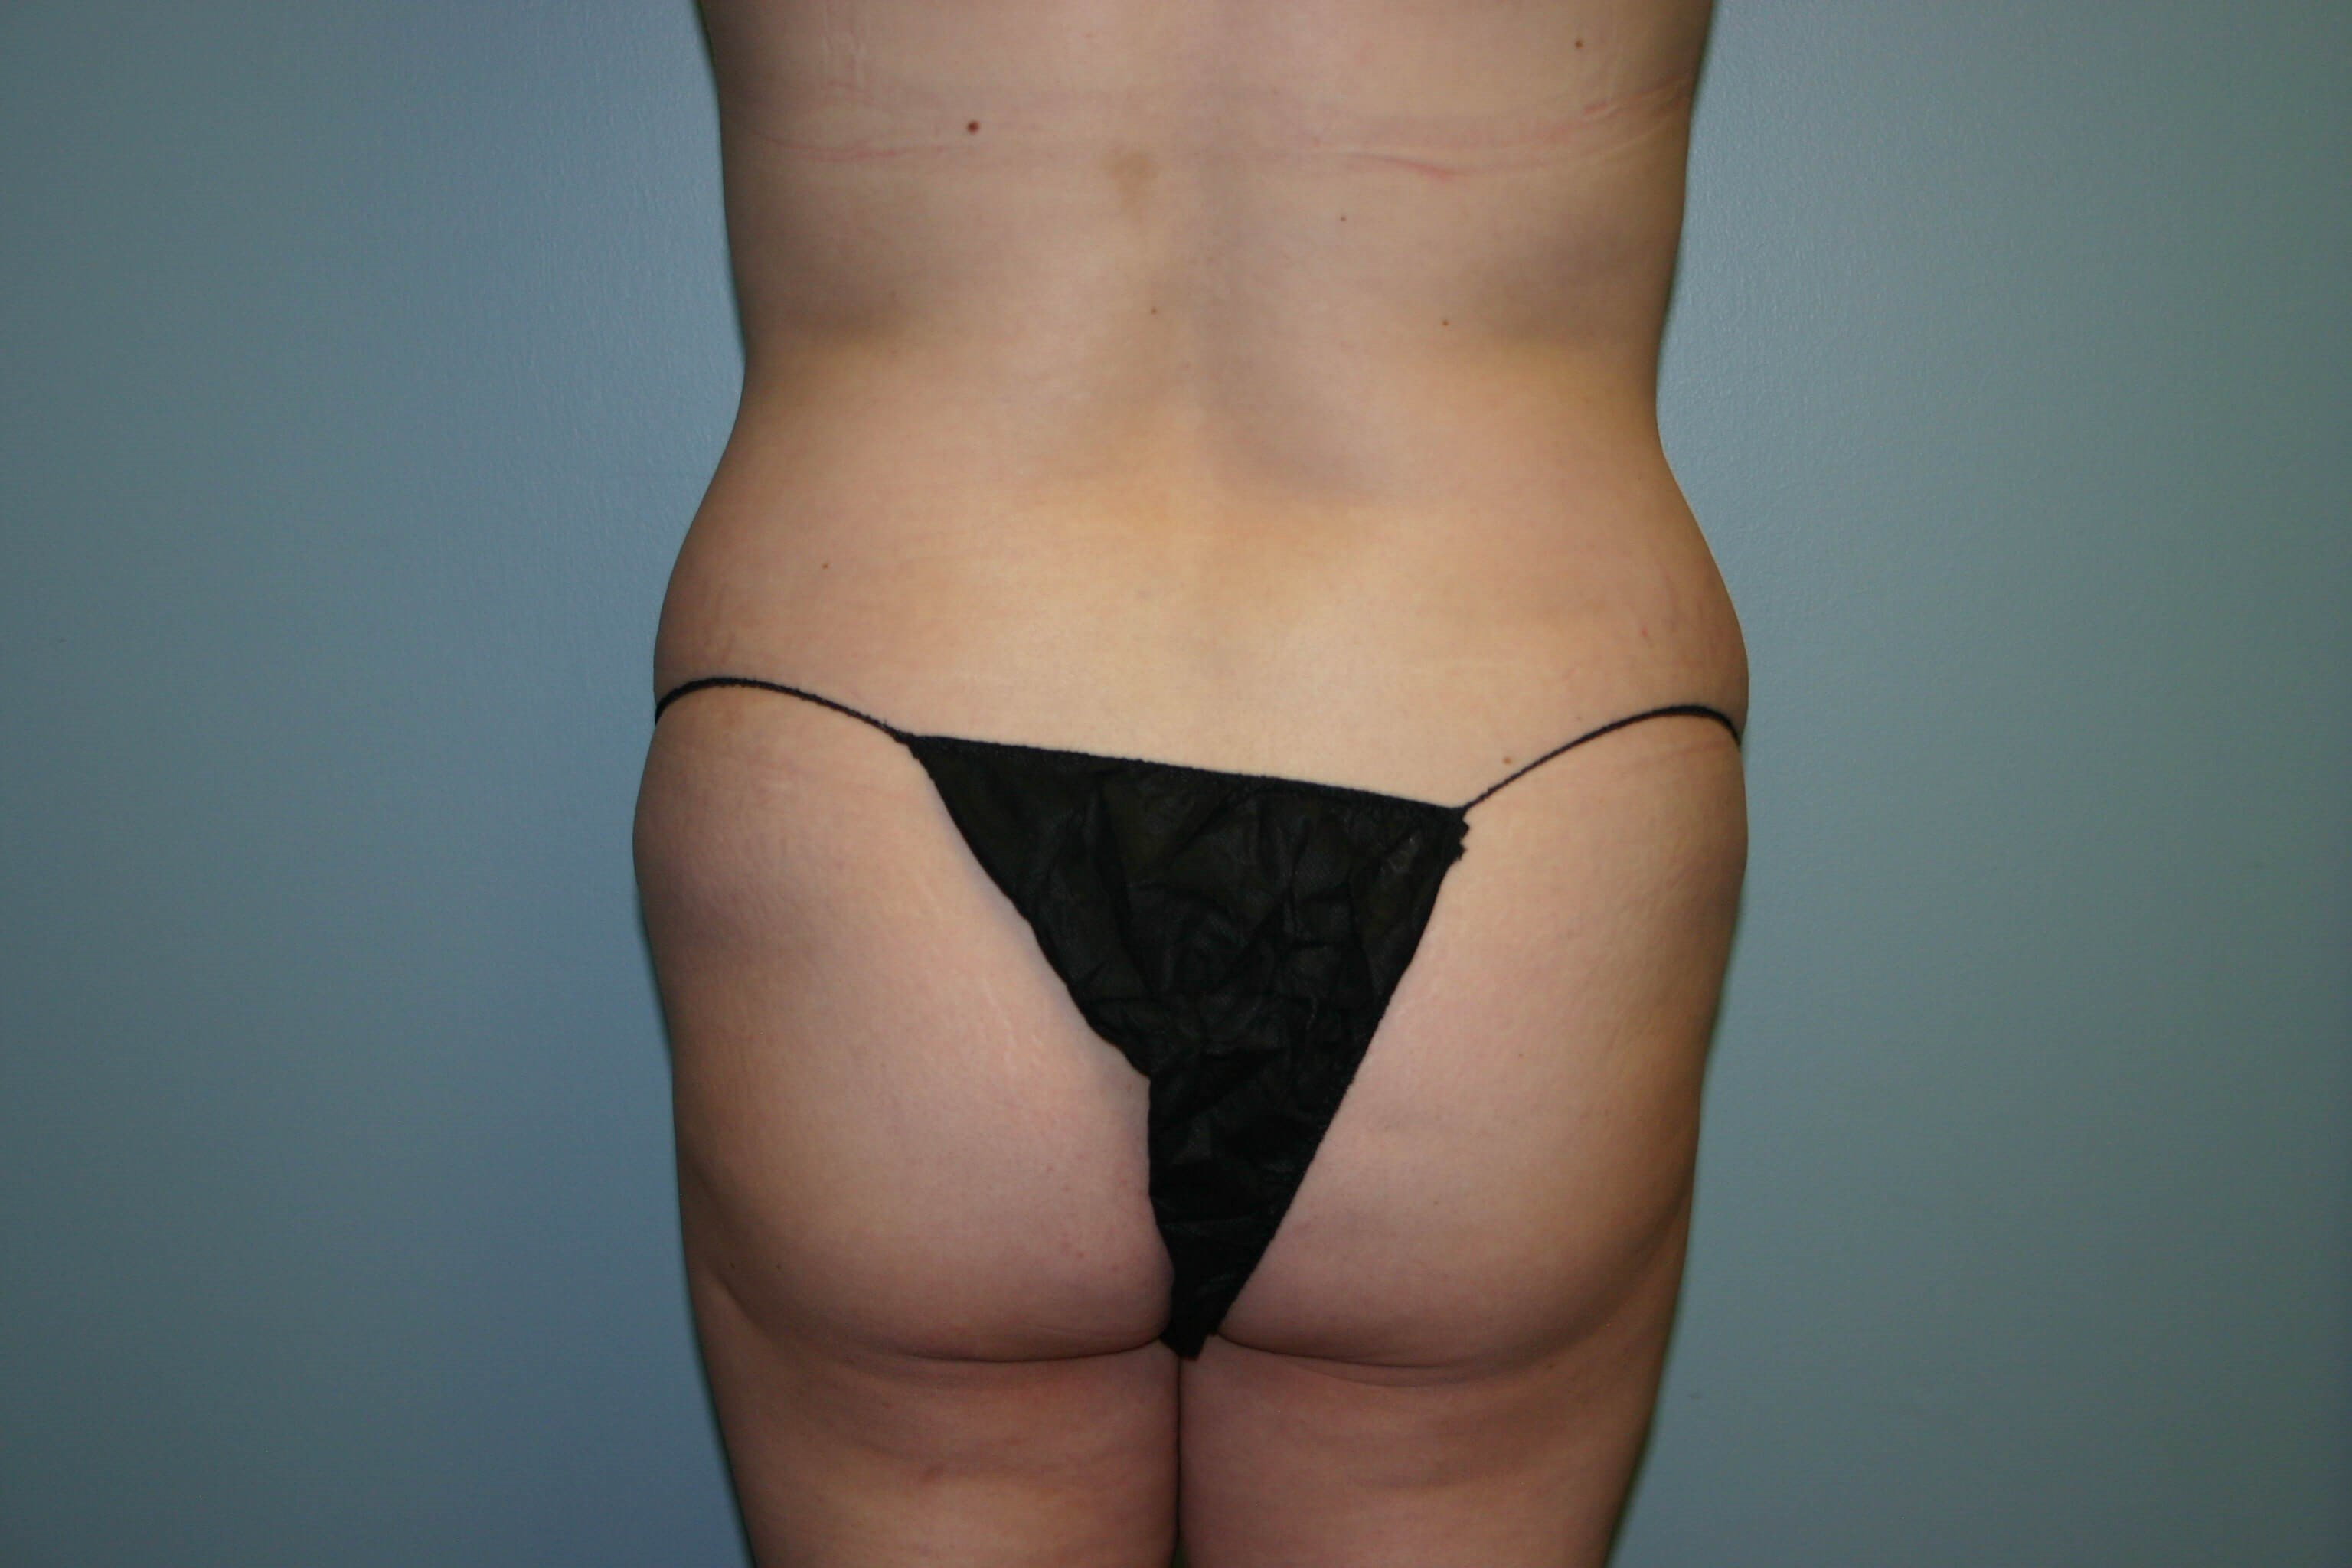 4 Months Post-op Butt Aug Before